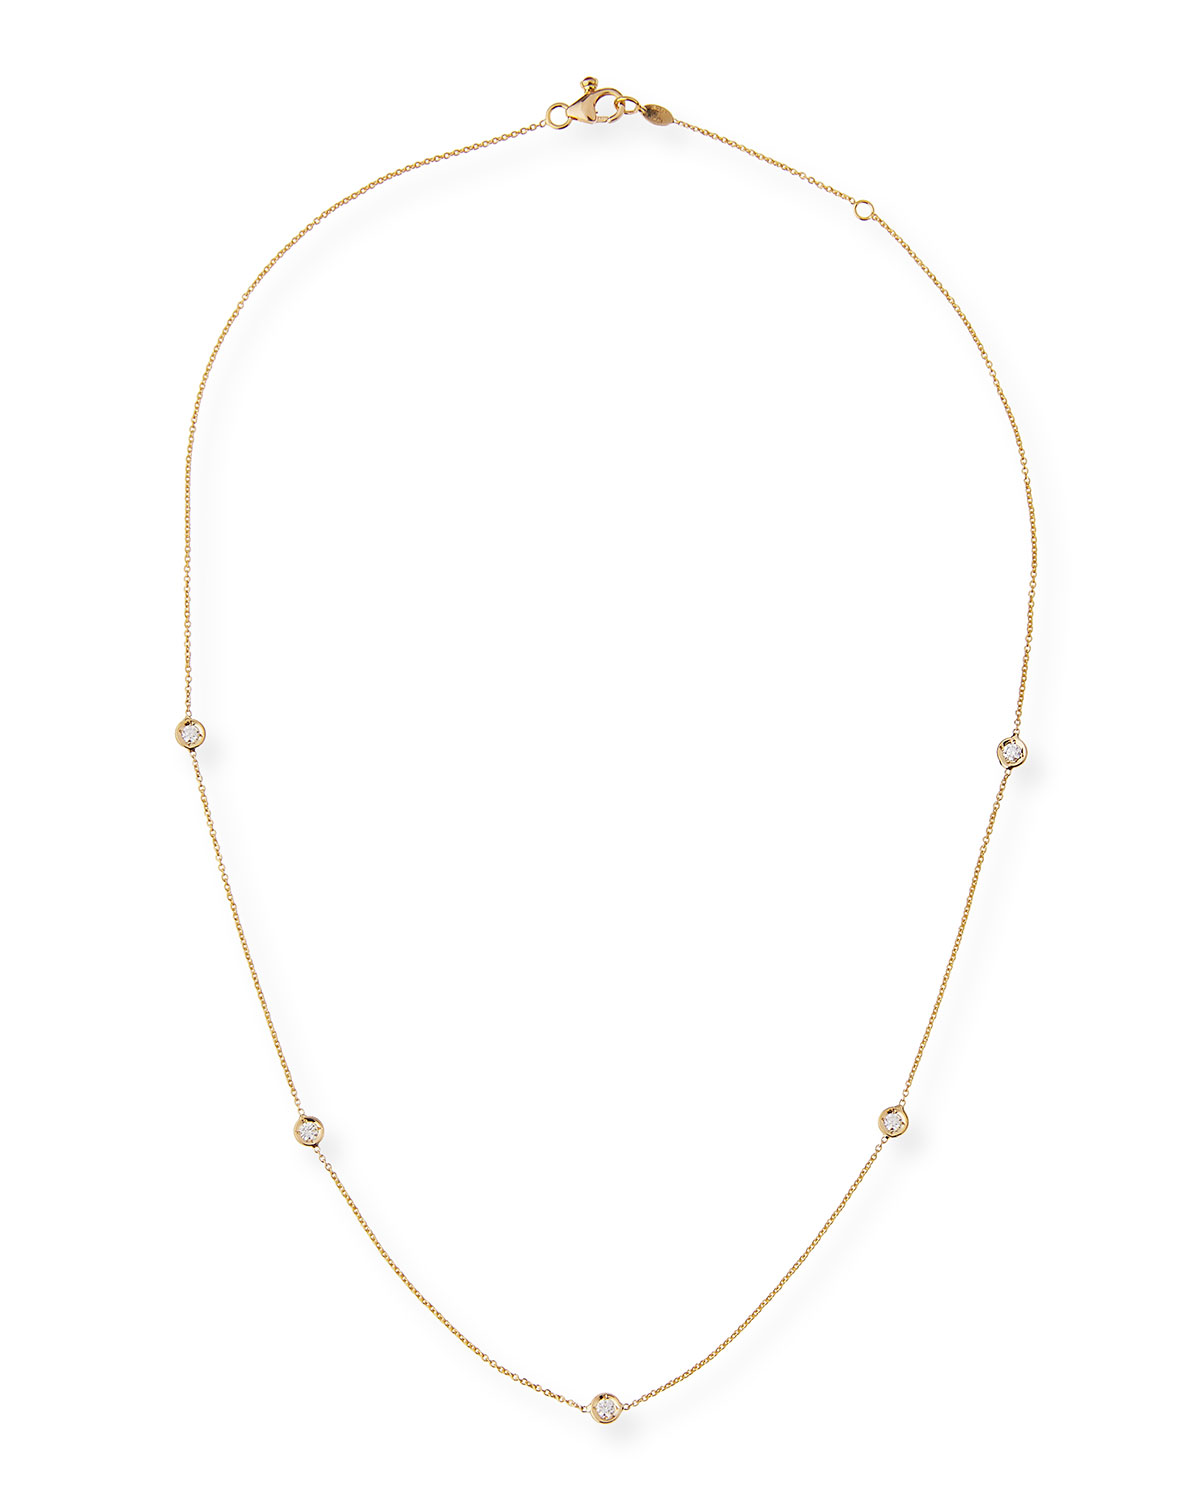 Carelle 18k Gold Collar Necklace with Diamonds Xgbws